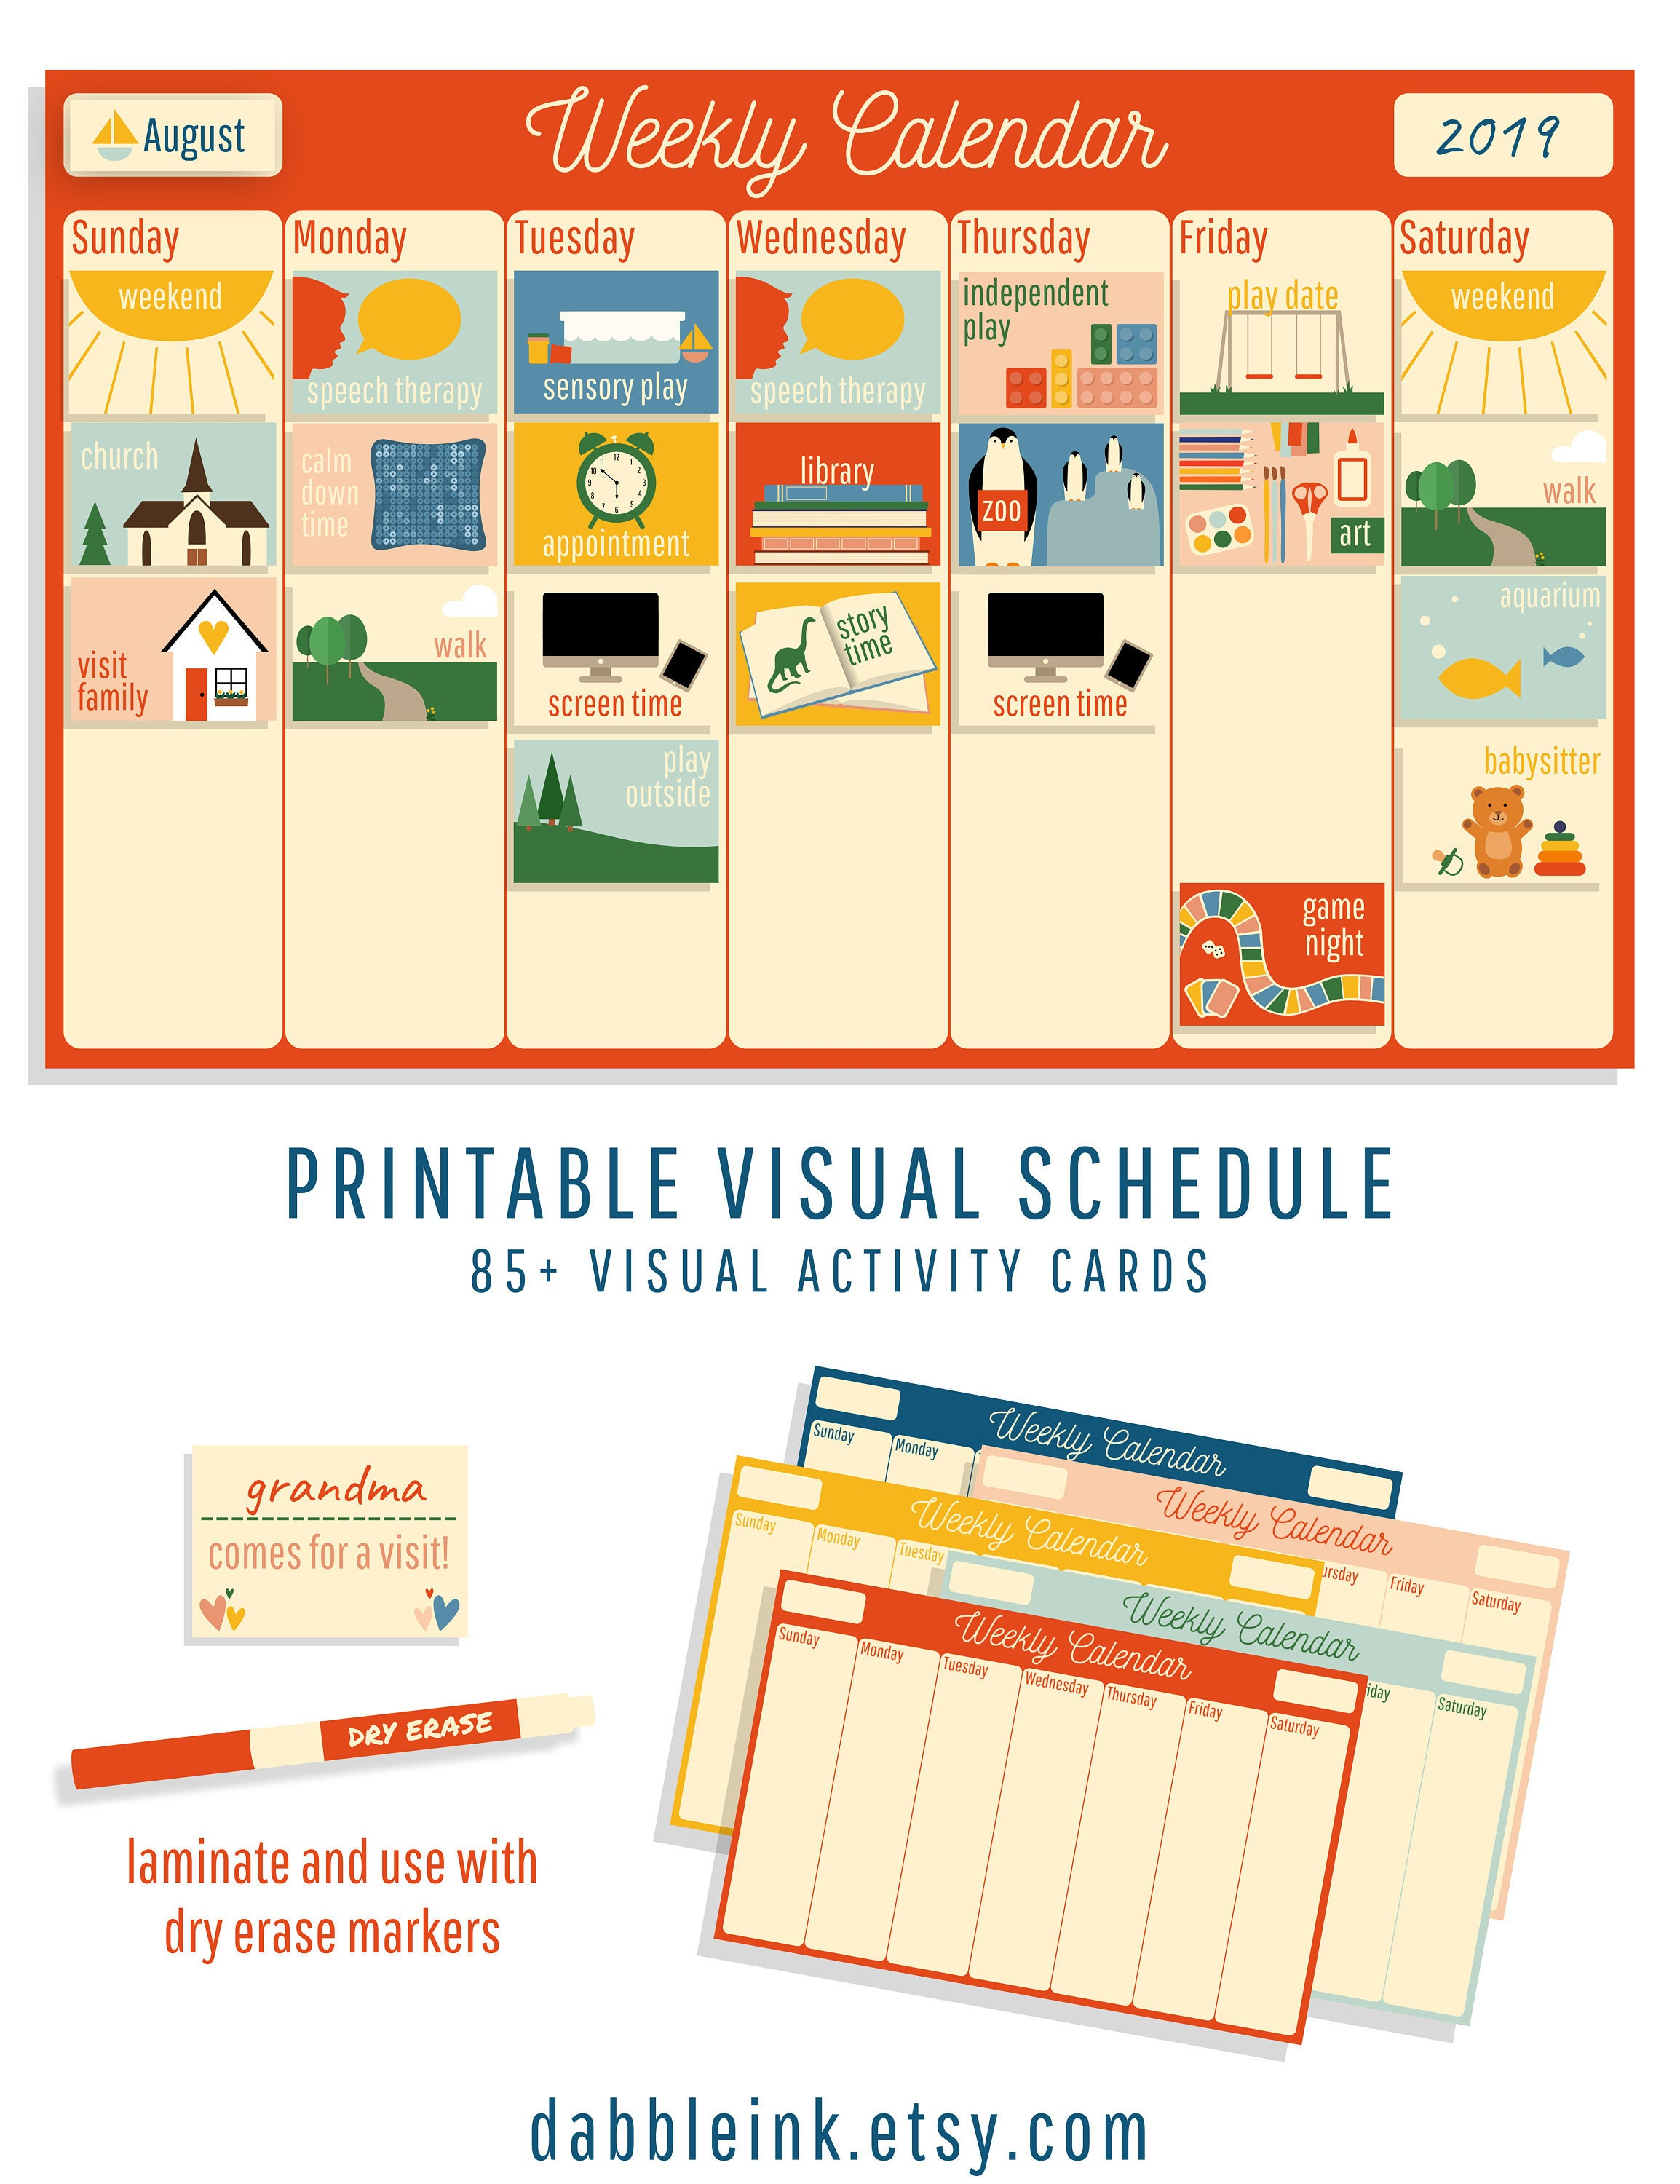 photograph relating to Printable Visual Schedule titled Visible Timetable I Autism I Delayed Speech I Weekly Plan Playing cards I Exclusive Desires Calendar I Visible Match Planner I Imagine Agenda